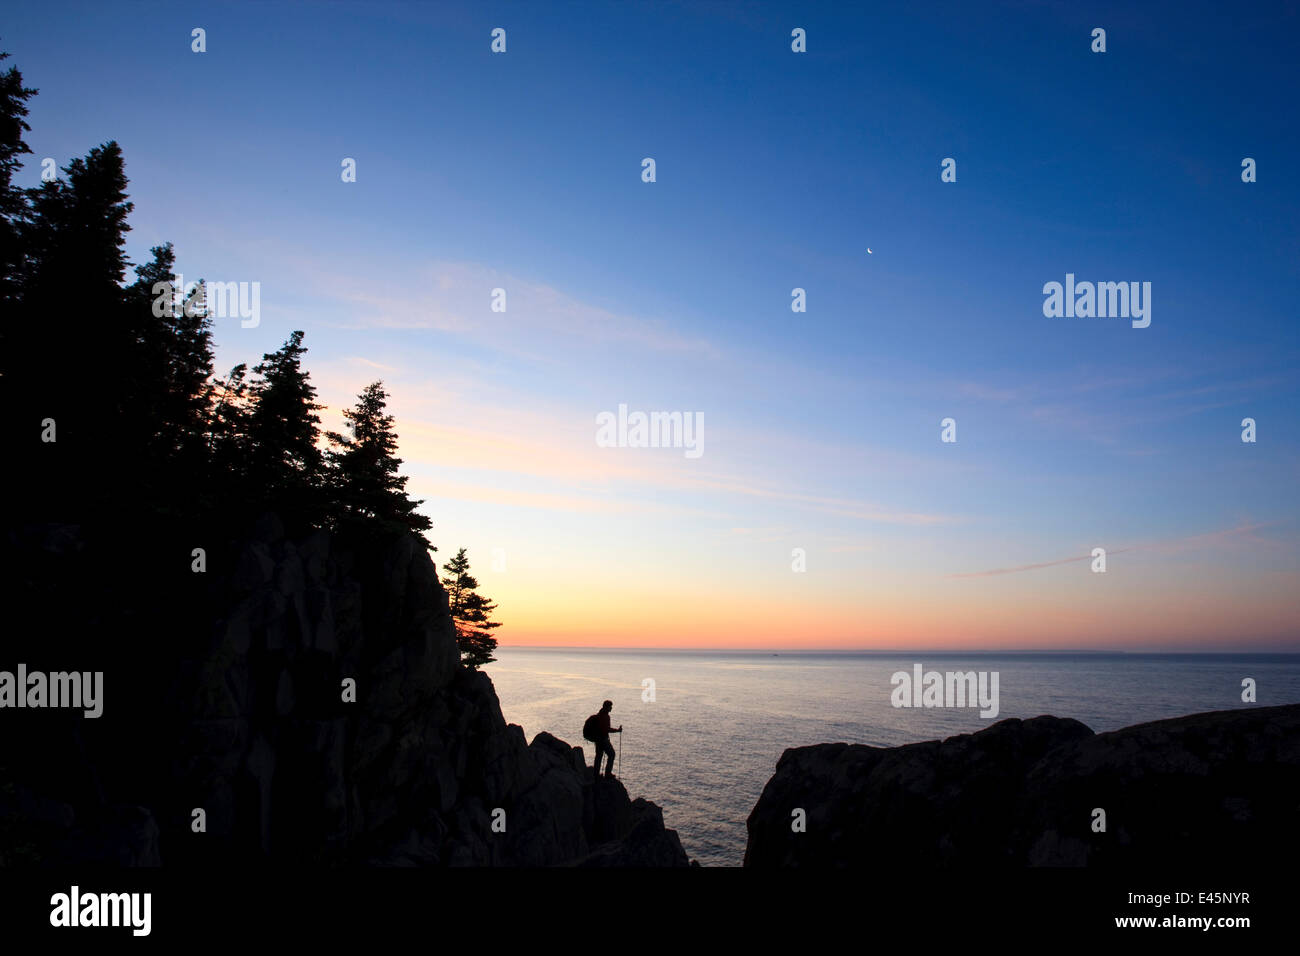 Lone hiker at sunrise on the Bold Coast trail in Cutler, Maine, USA, June 2009. Model released. - Stock Image